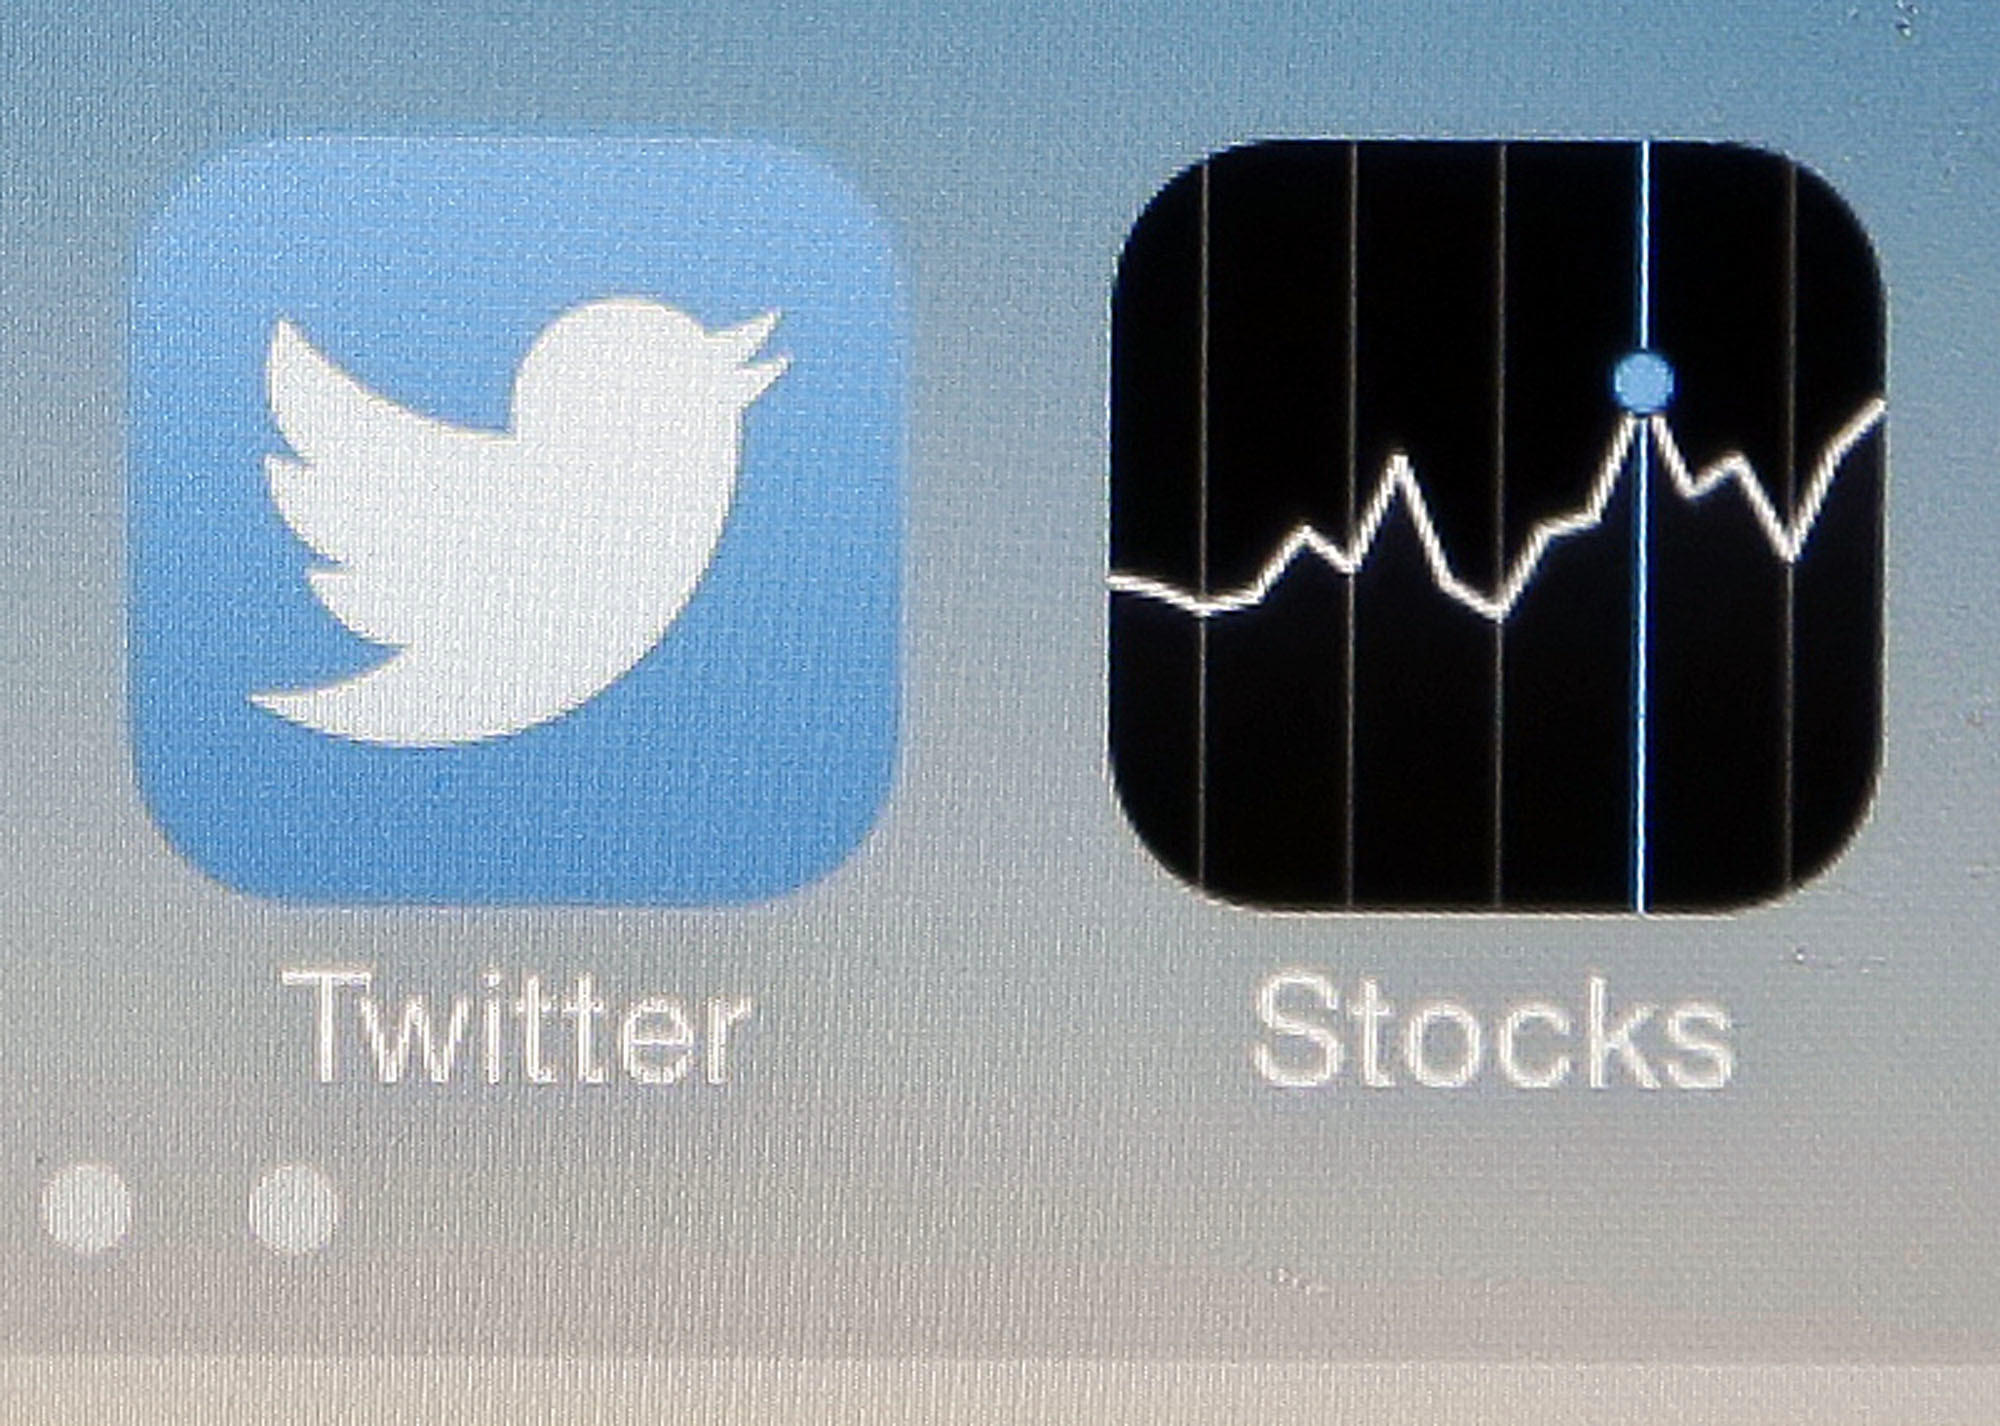 Maybe Twitter needs to get used to being small